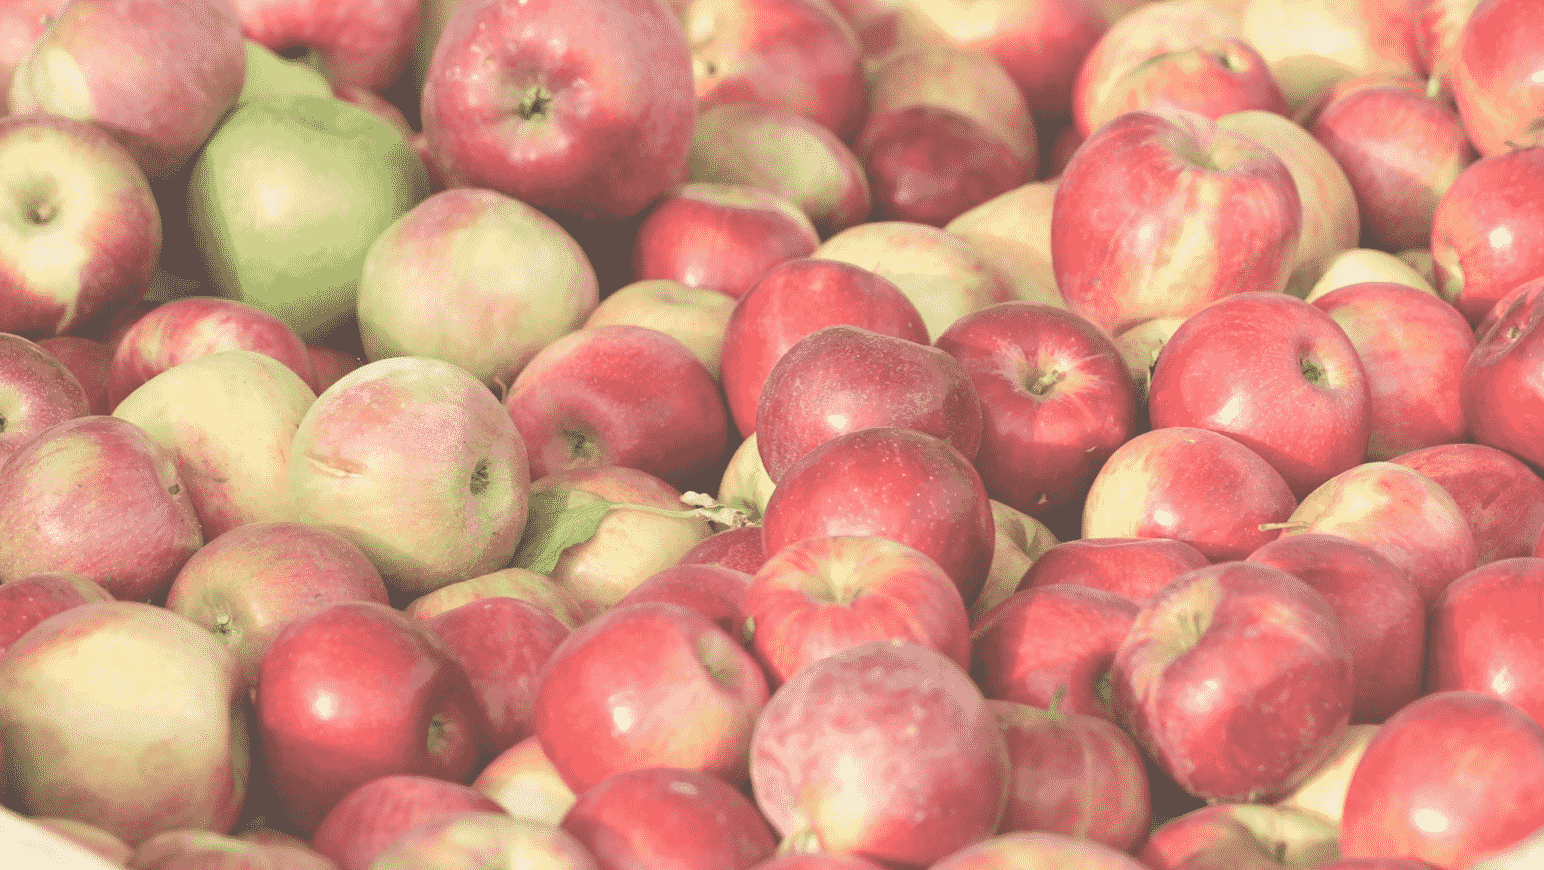 Image of Apples Picked at Terhune Orchards in Princeton NJ